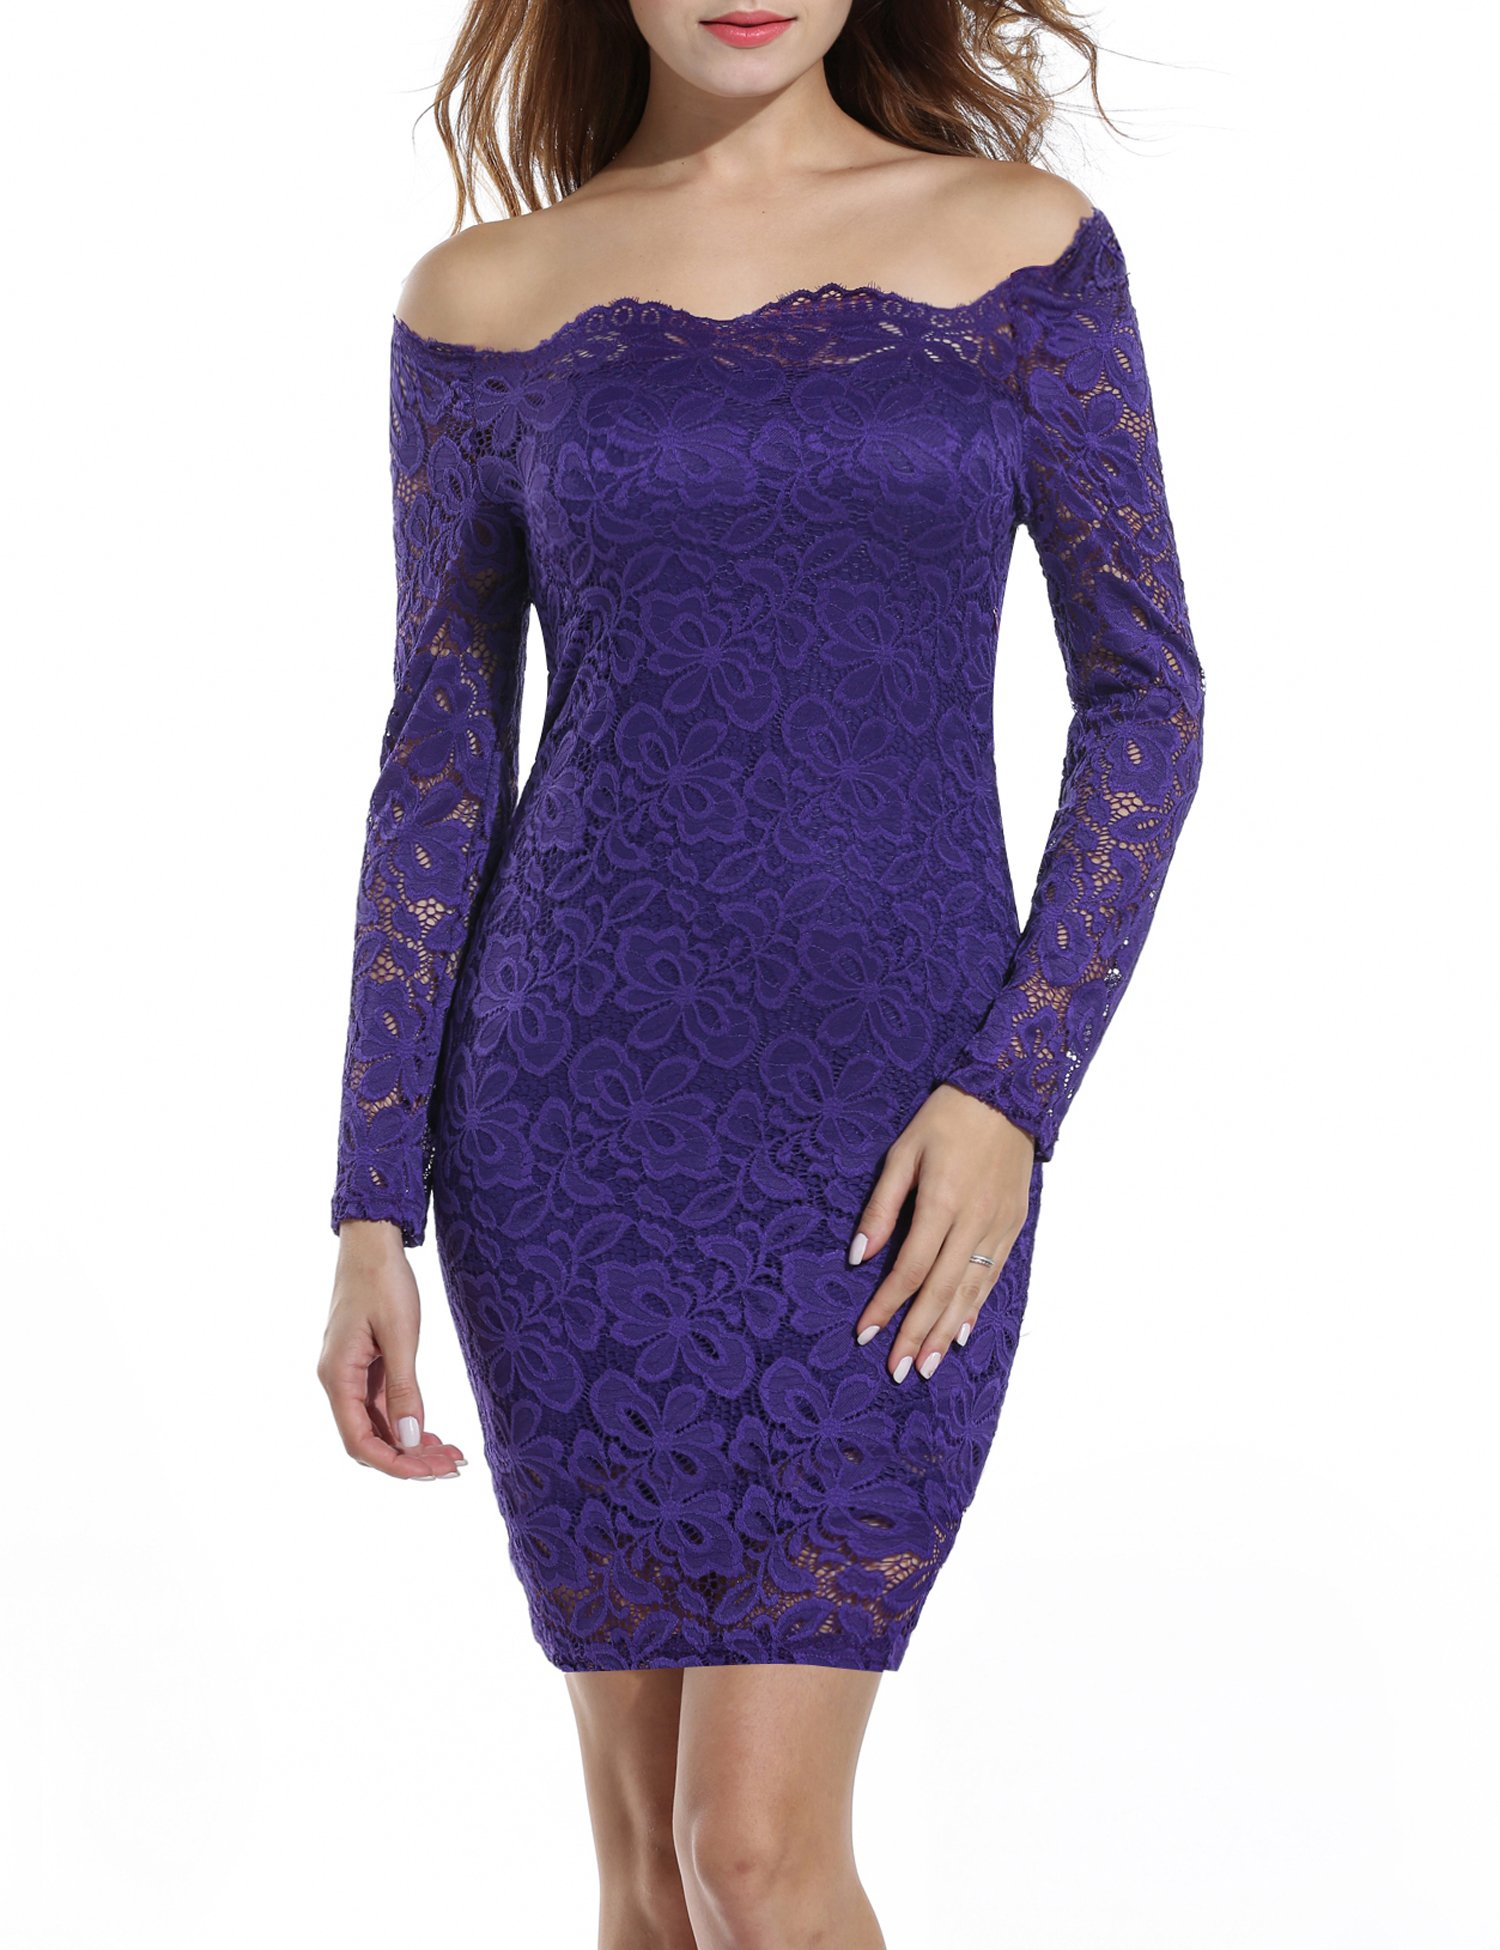 Bodycon amazon buy where dresses on outfit